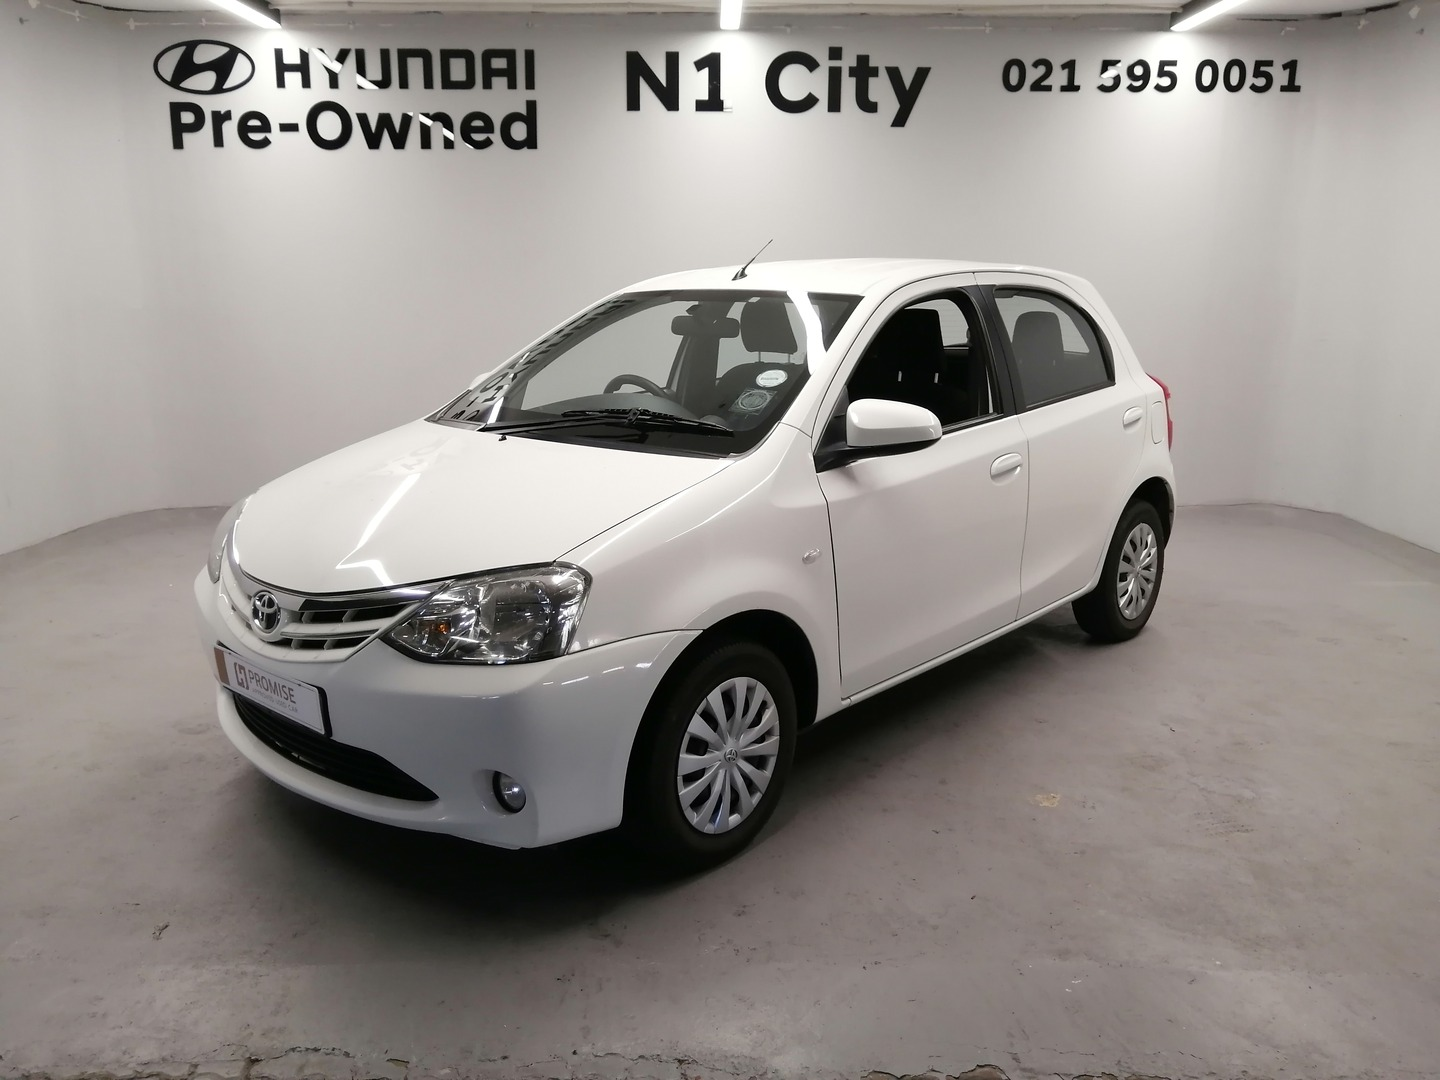 TOYOTA 1.5 Xs/SPRINT 5Dr Cape Town 0325741